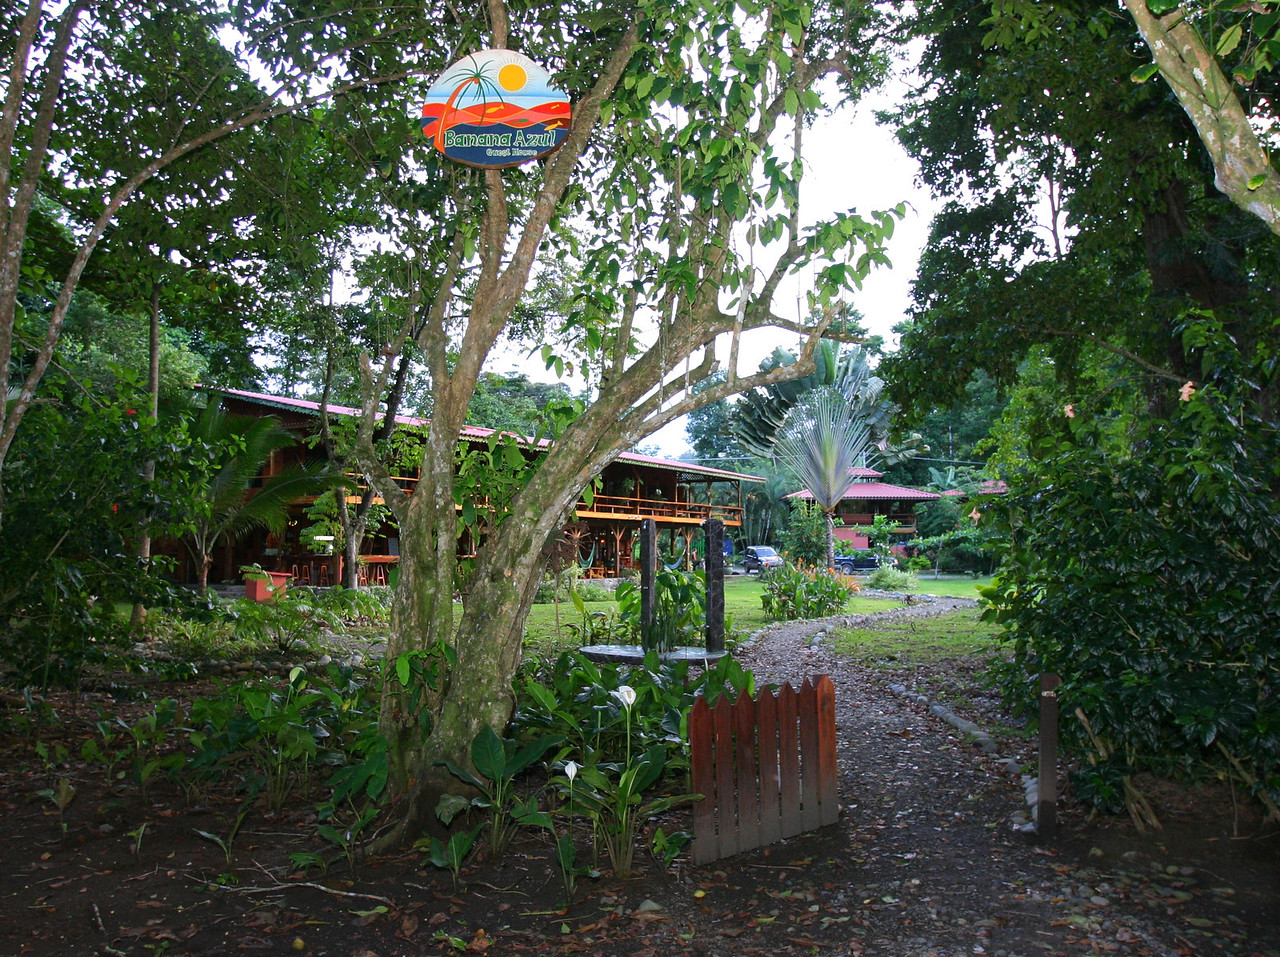 After landing in San Jose, Costa Rica, and a long bumpy bus ride to Puerto Viejo de Talamanca, Limon, on the Caribbean coast, we arrive at the Banana Azul Hotel.  This pathway entrance from the beach leads to the front desk and gate entrance to the hotel.